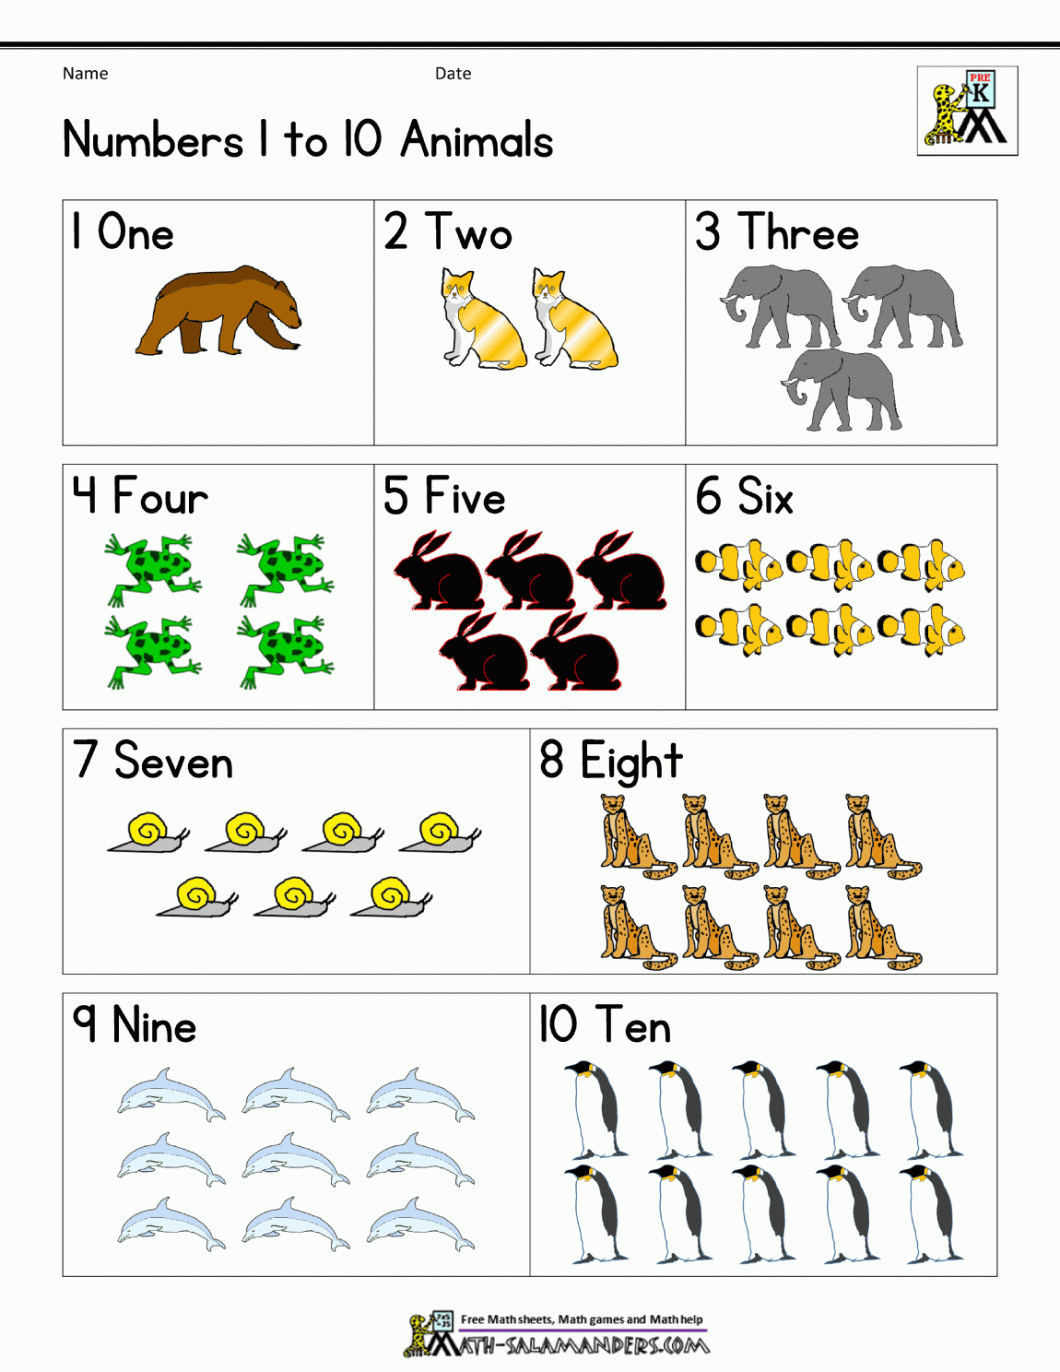 Free Printable Math Worksheets For Preschool And Kindergarten – With - Free Printable Math Workbooks